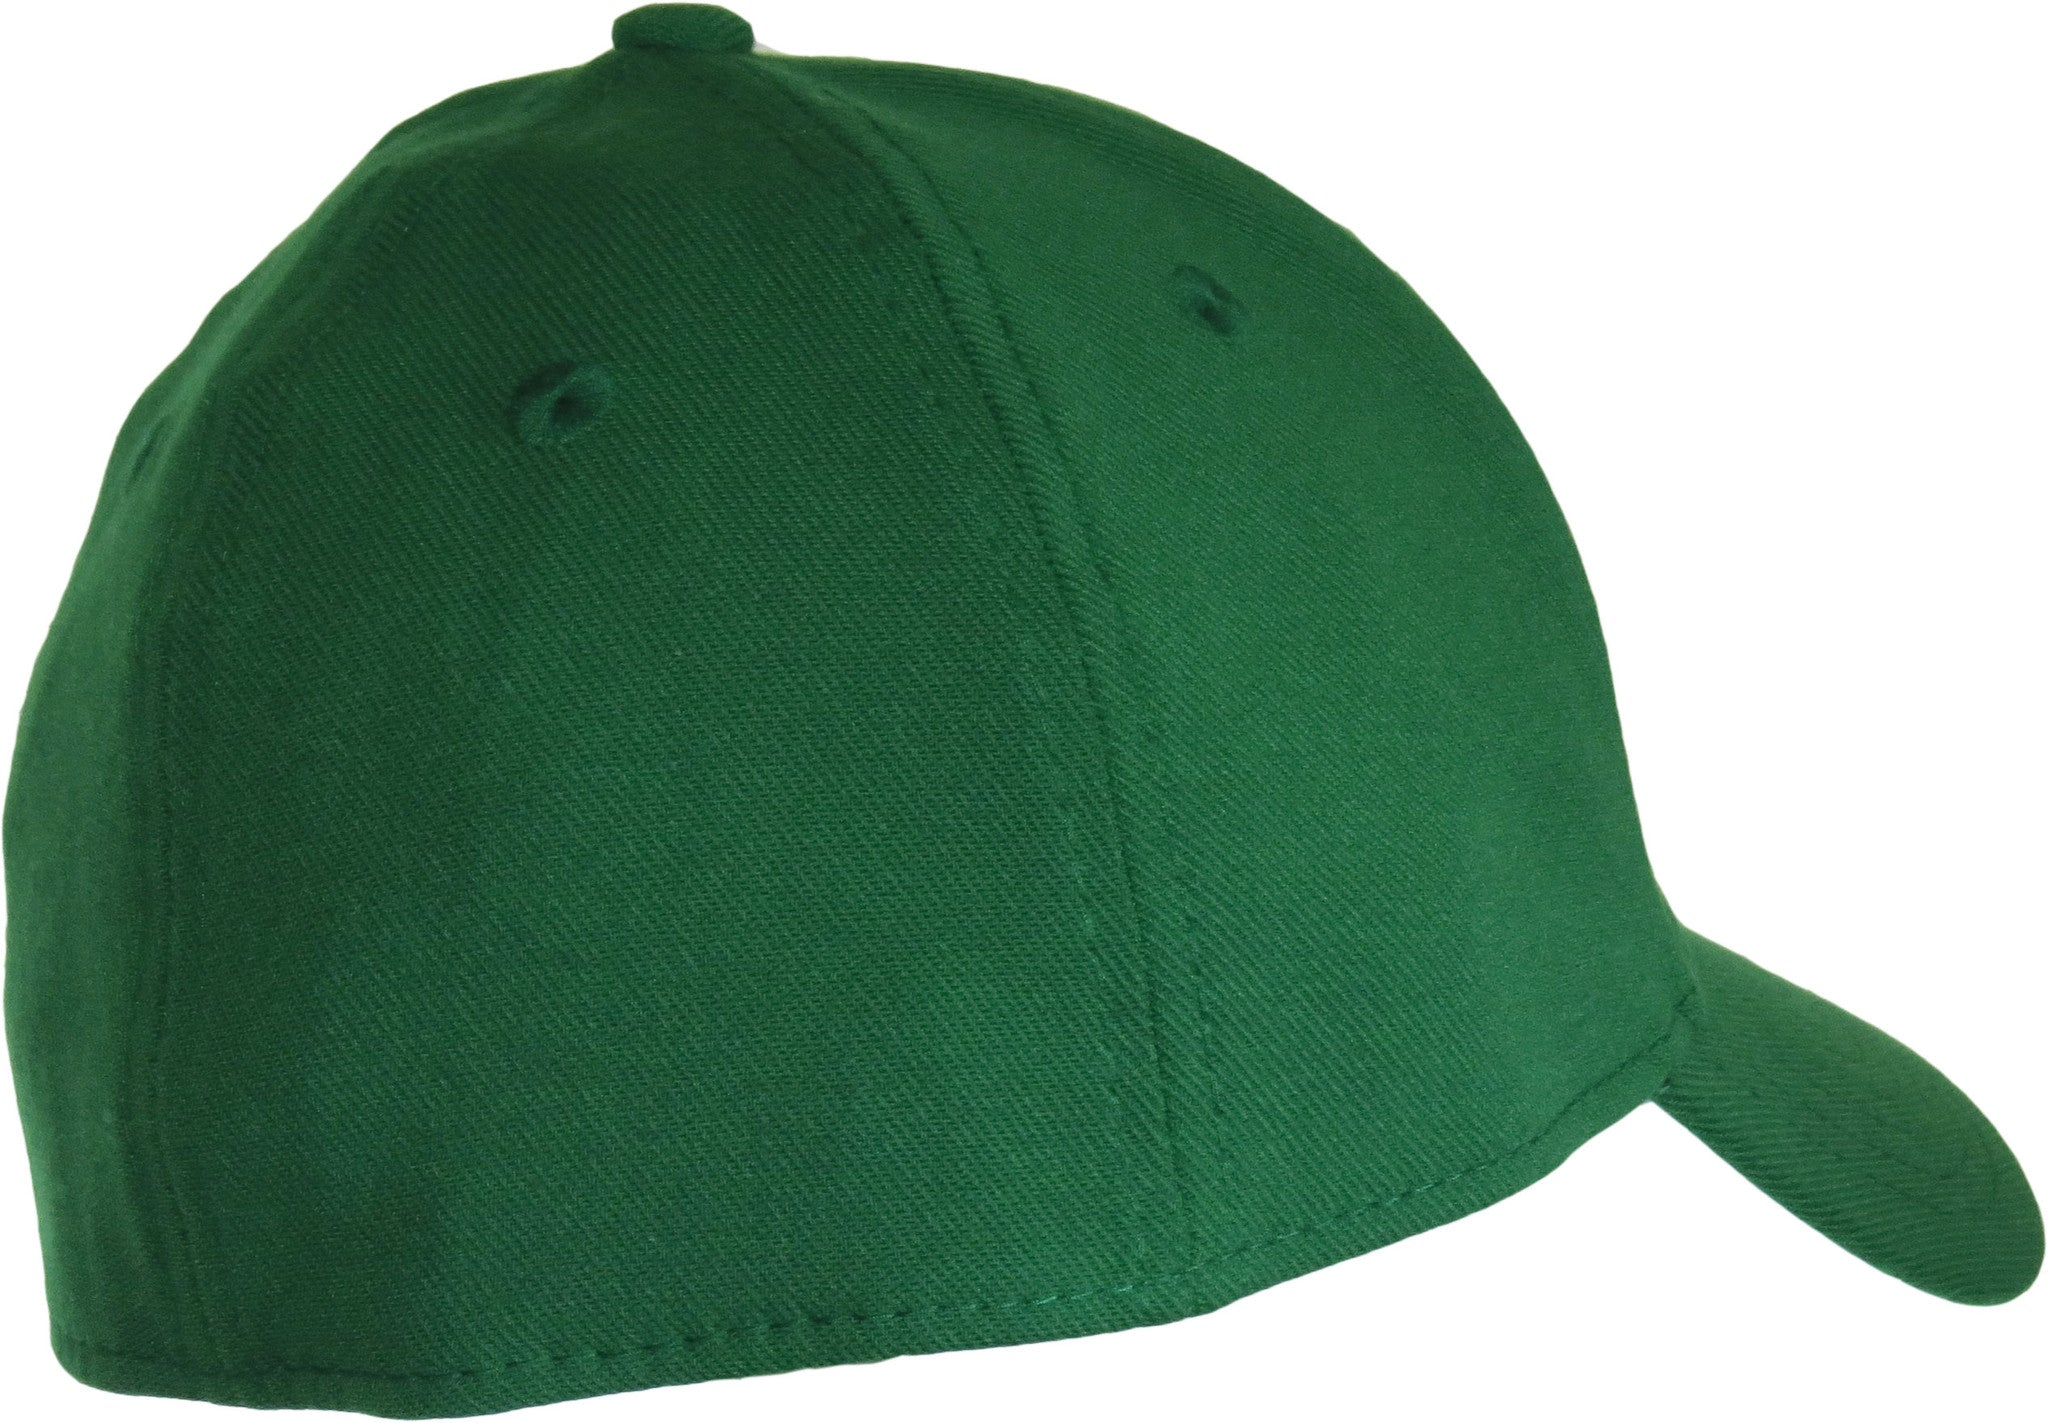 8b59436a34e ... New Era 3930 Classic Curved Peak Stretch Fit Plain Kelly Green Baseball  Cap - pumpheadgear